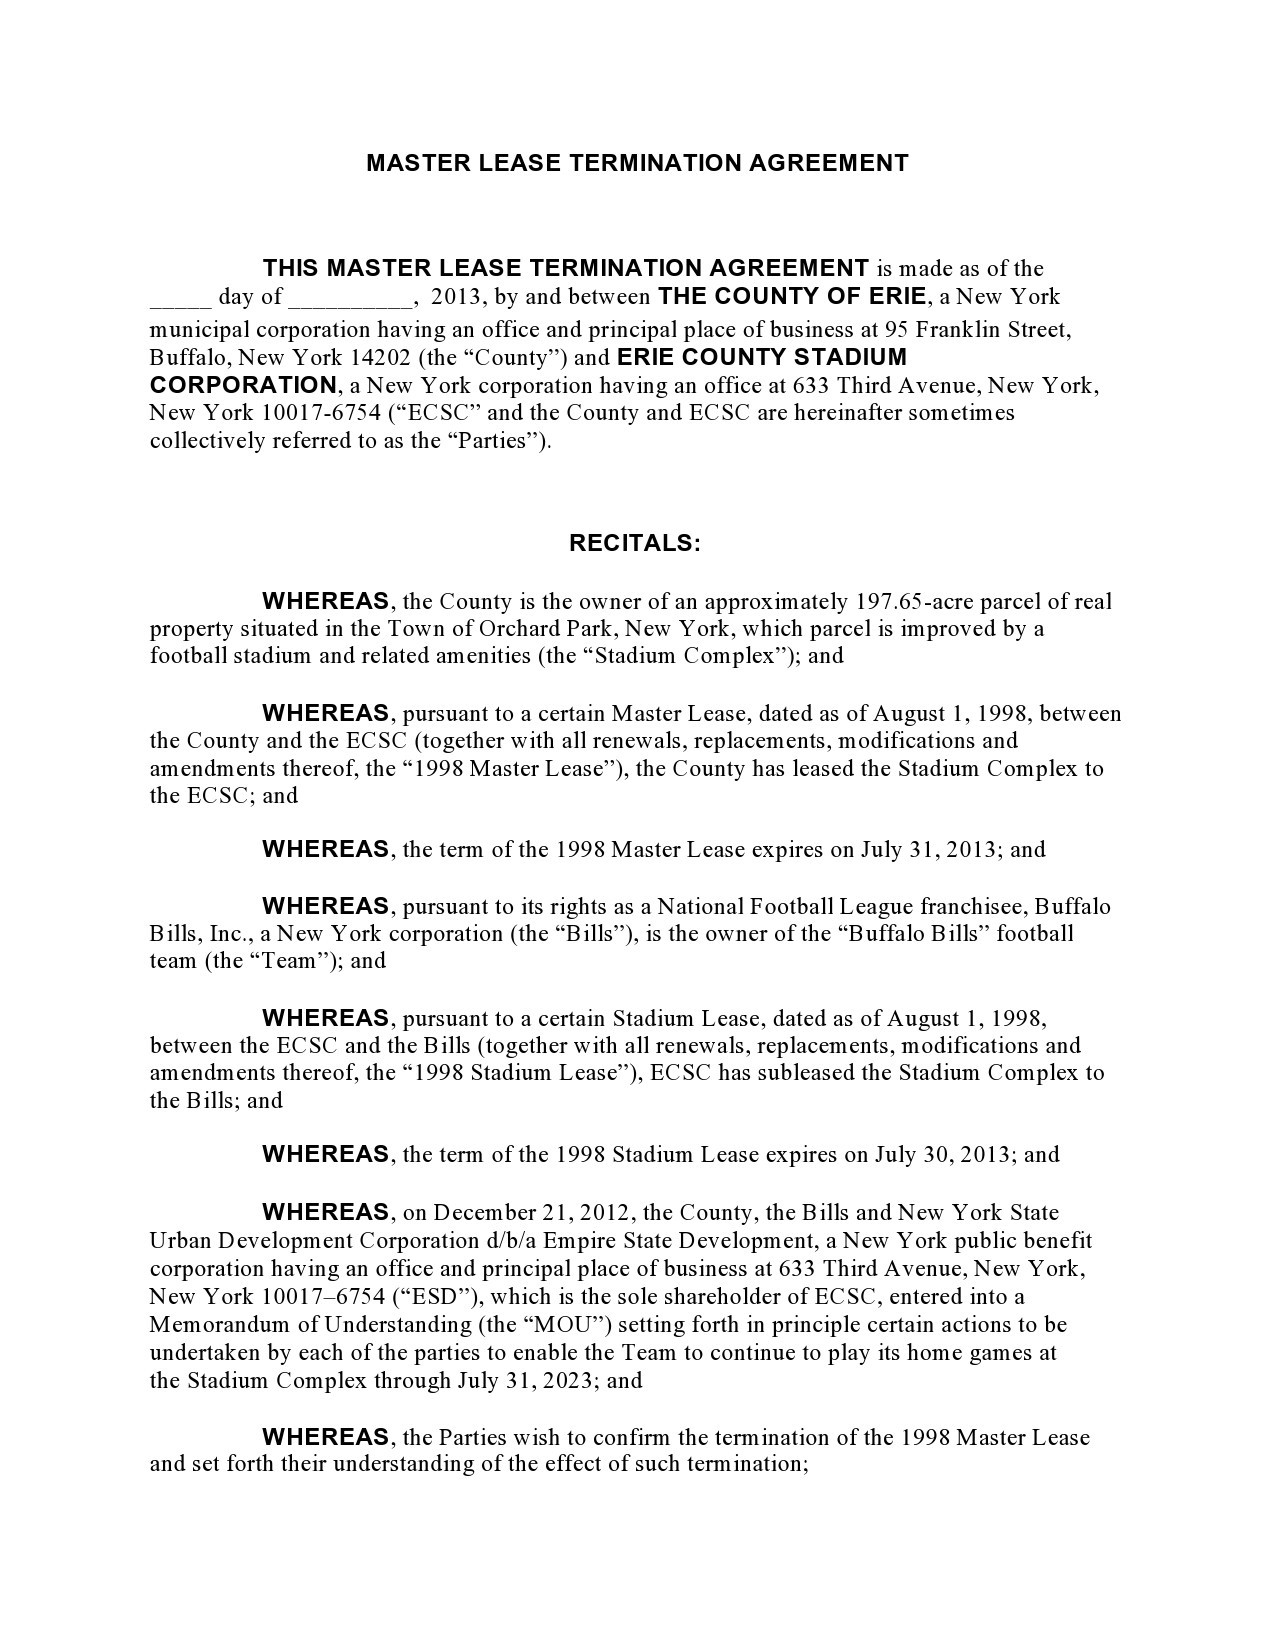 Free lease termination agreement 27